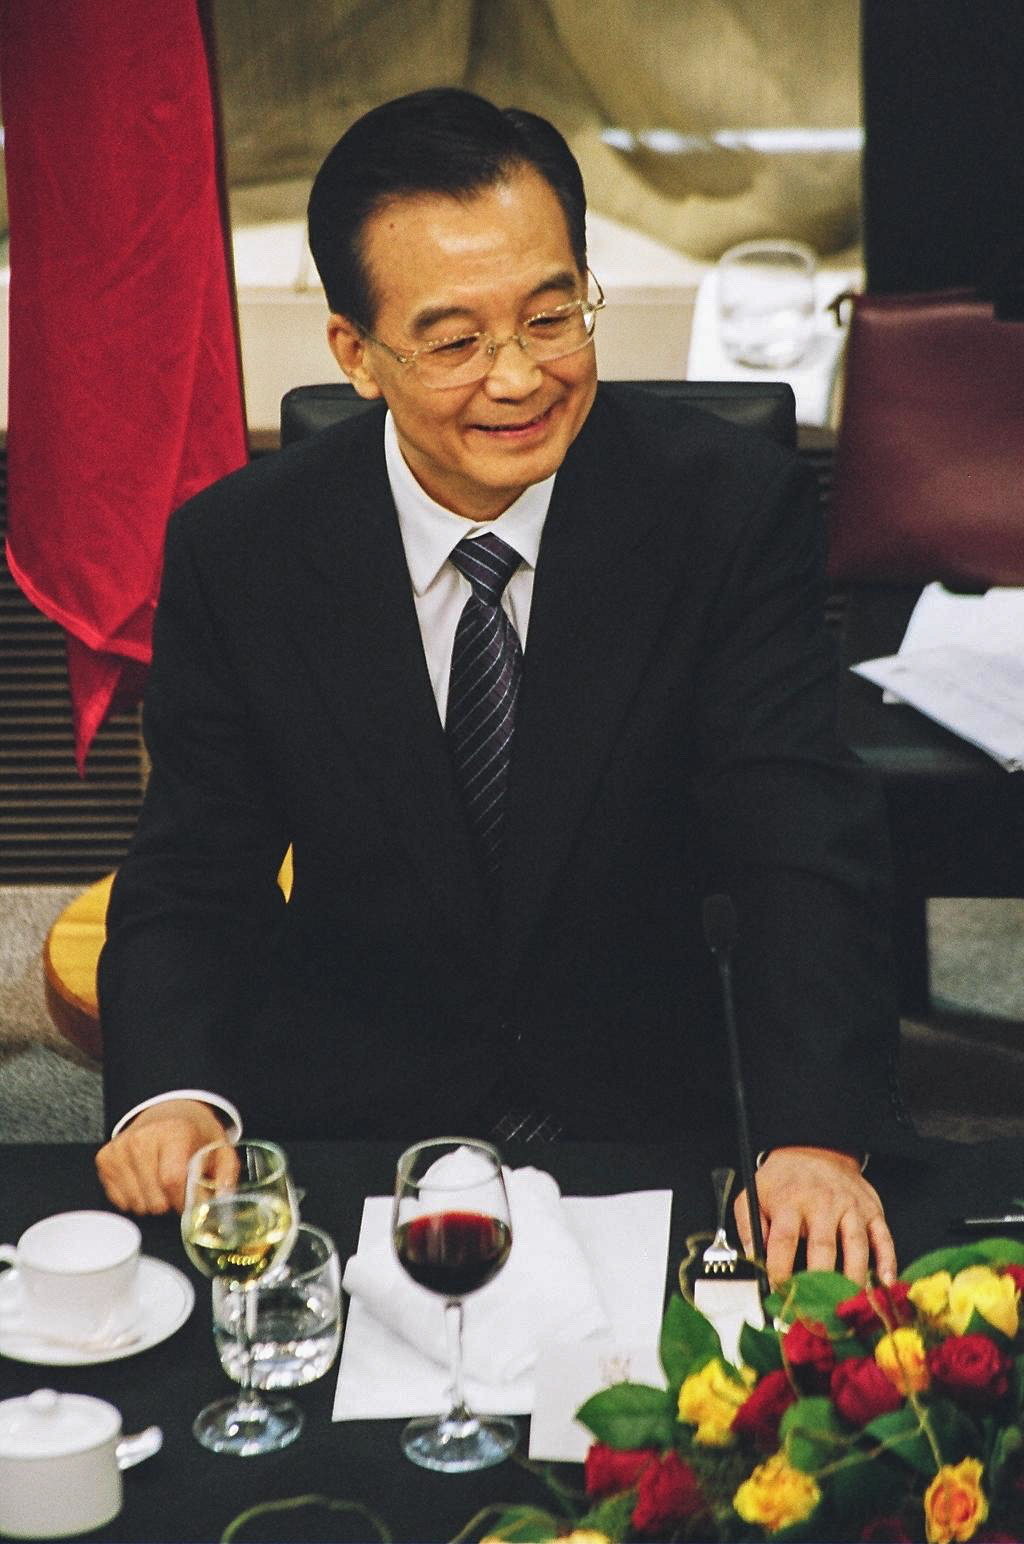 Wen Jia Bao (Former Prime Minister of China)